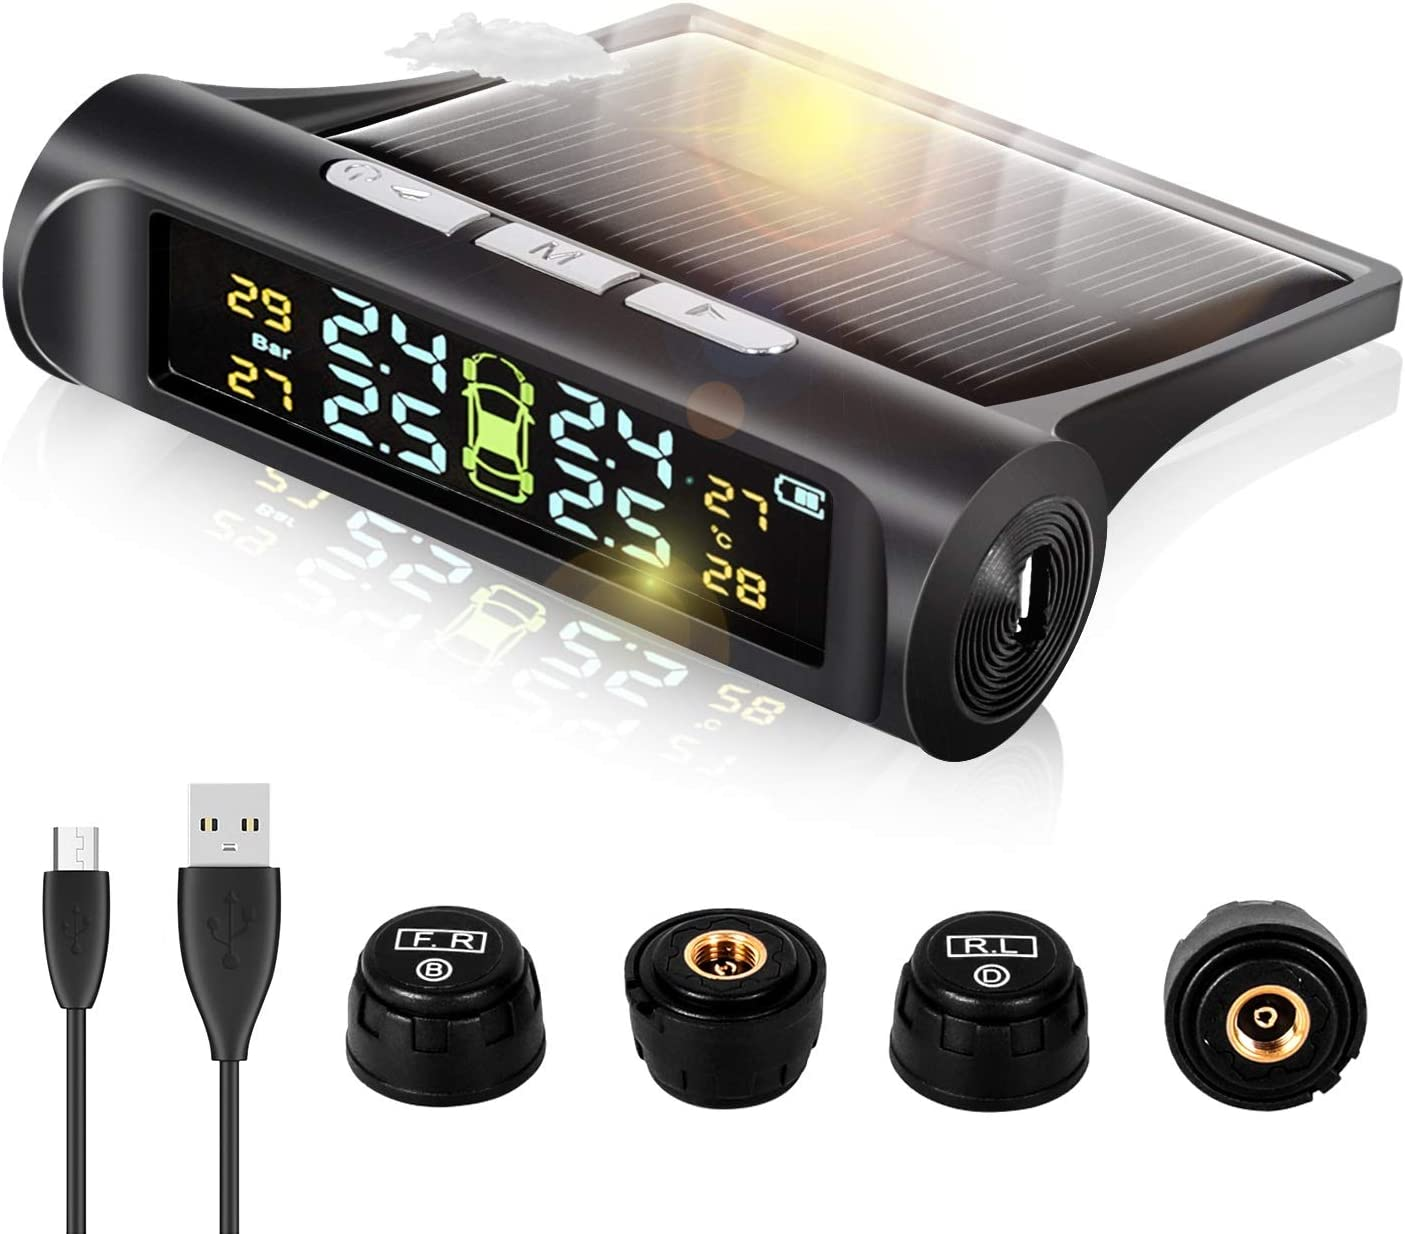 HD Large Screen 4 Tires Pressure and Temperature DEEWAZ Wireless TPMS Solar Powered Tire Pressure Monitoring System with 4 External Sensors Car TPMS Tire Auto Security Alarm